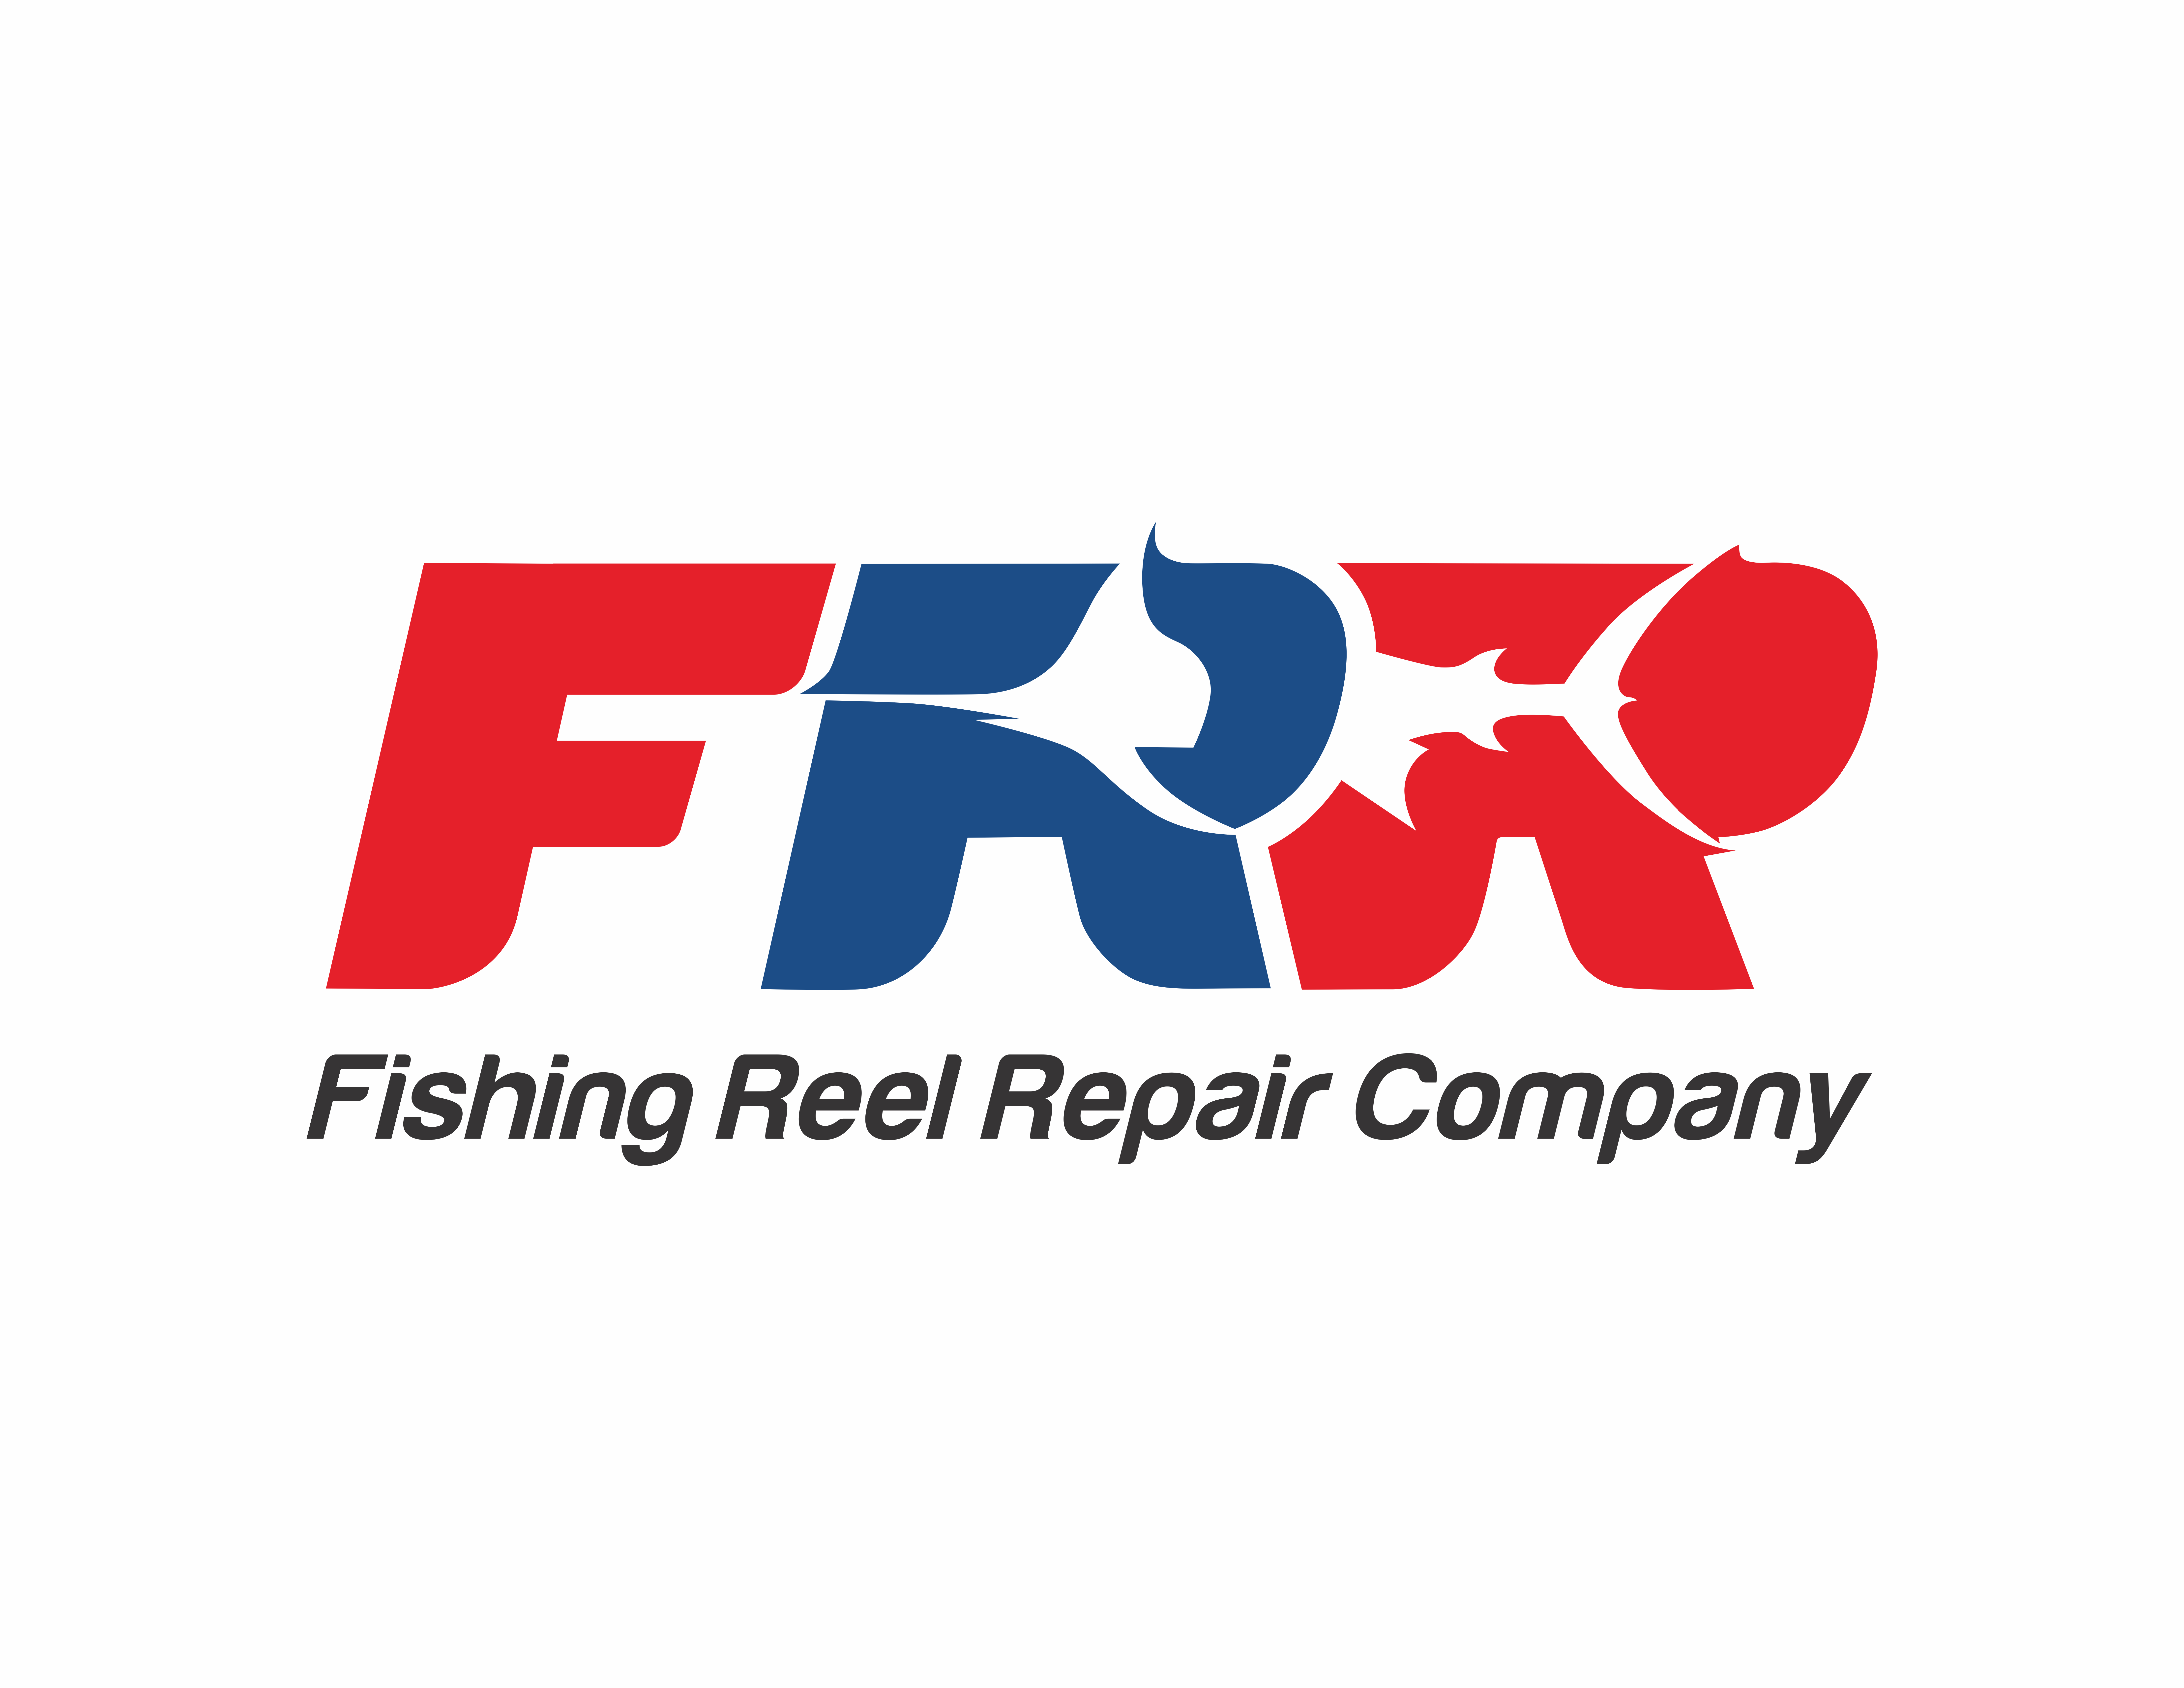 The Fishing Reel Repair Company Now Offers Reel Repair, Reel Cleaning, and Reel Tuning Services to the United States.